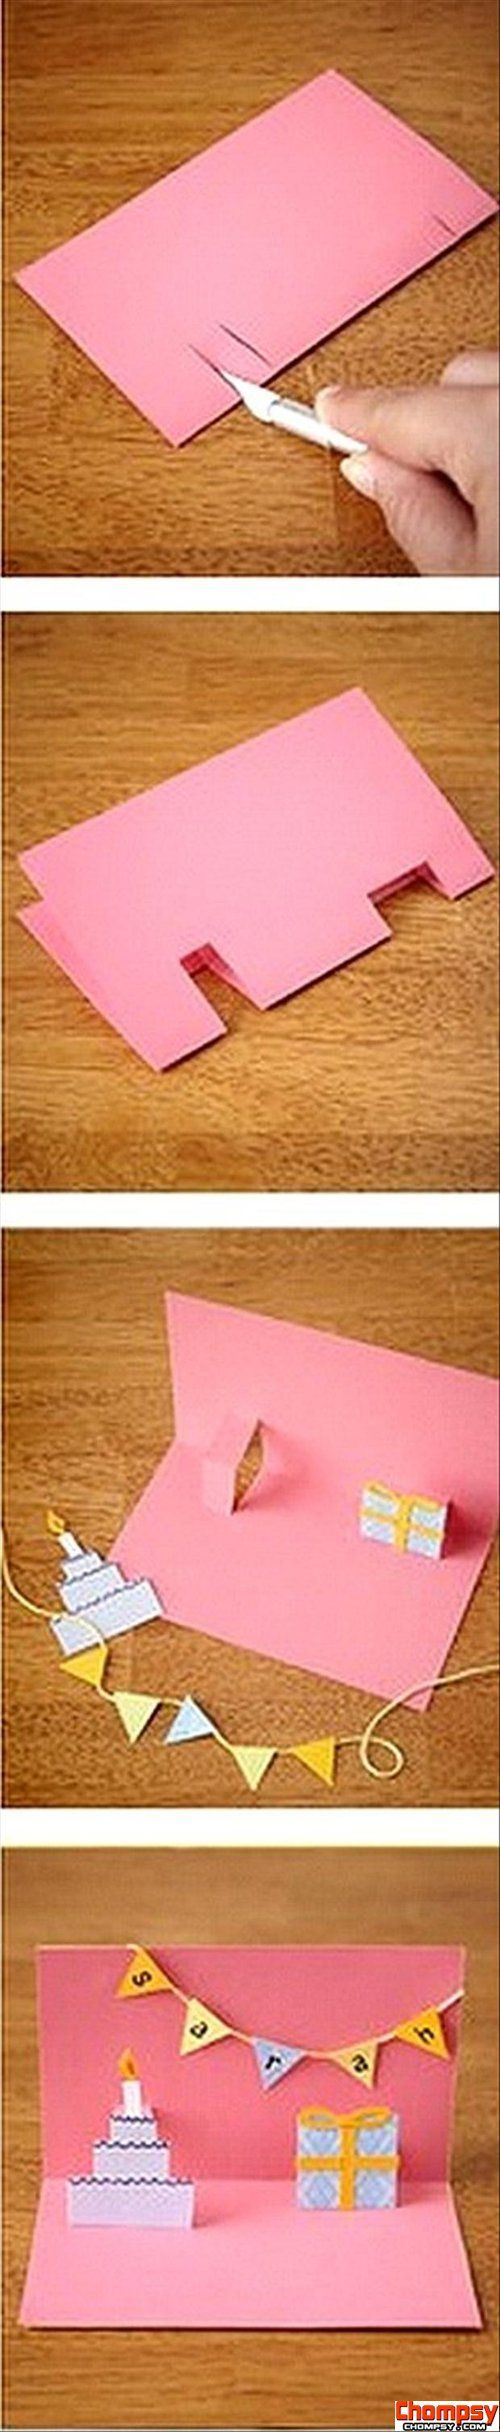 Make pop out birthday card fun crafts hobbies and crafts